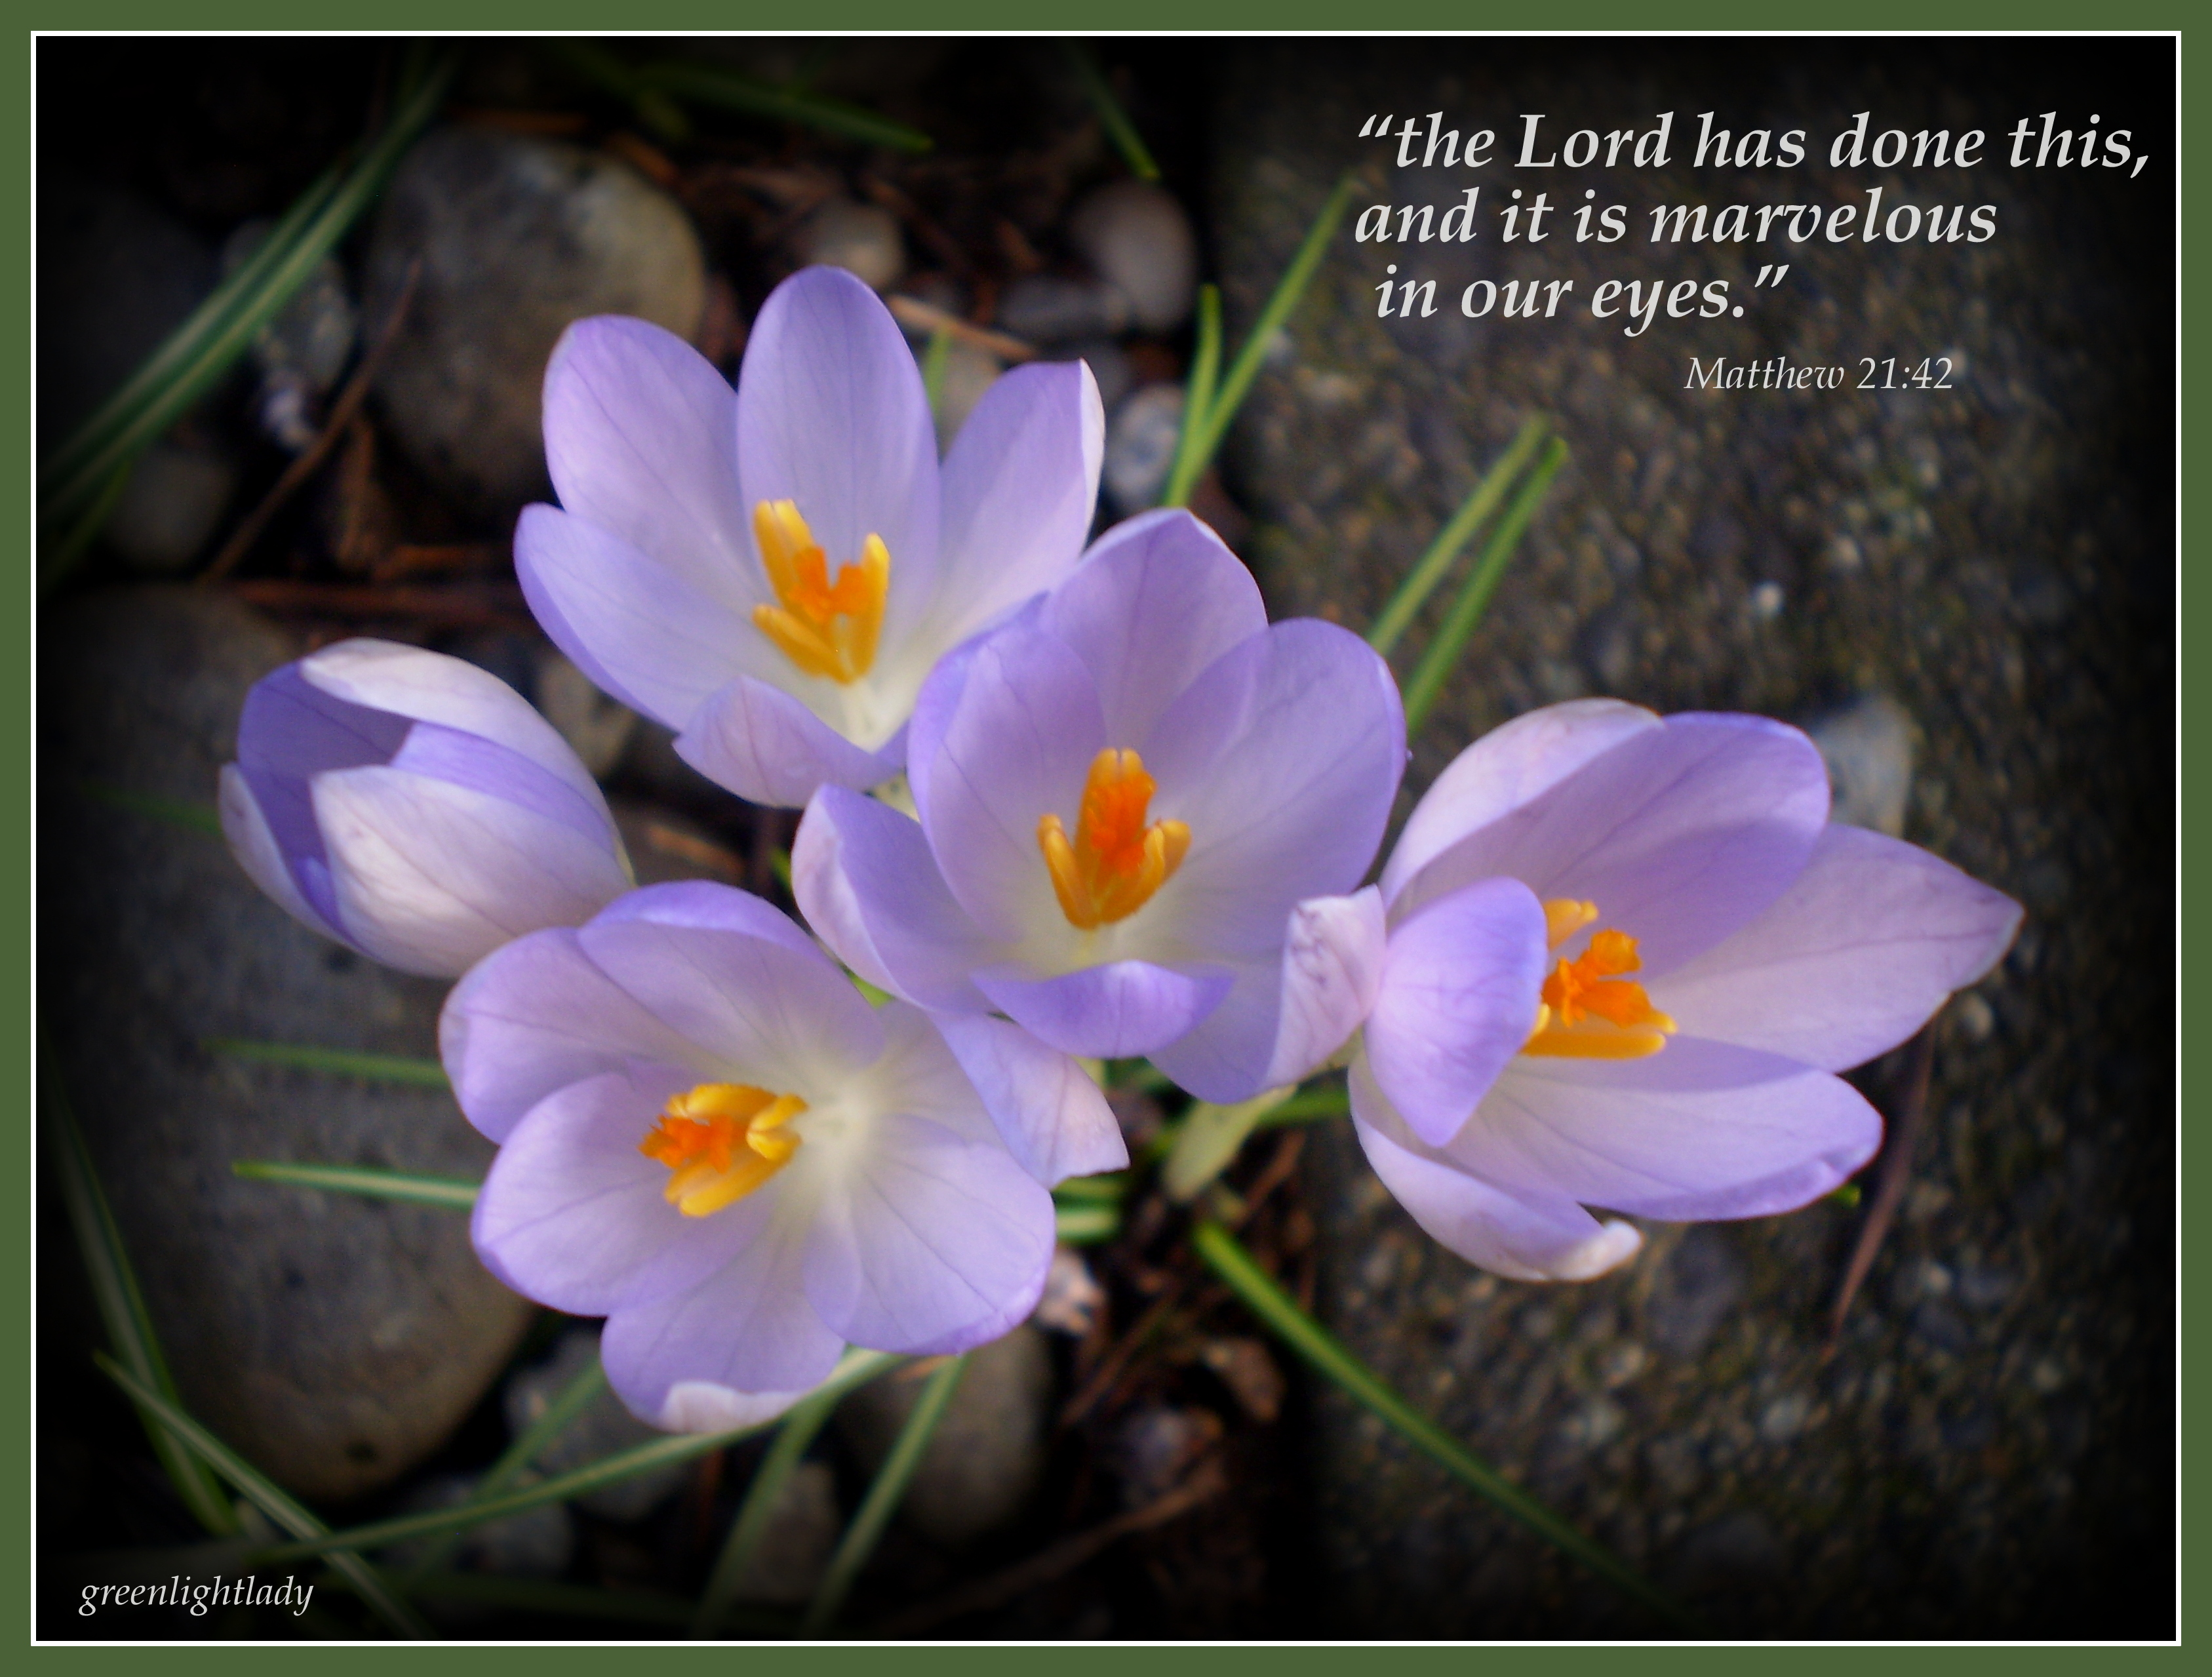 Images of Flowers With Bible Verses Tags Bible Verses